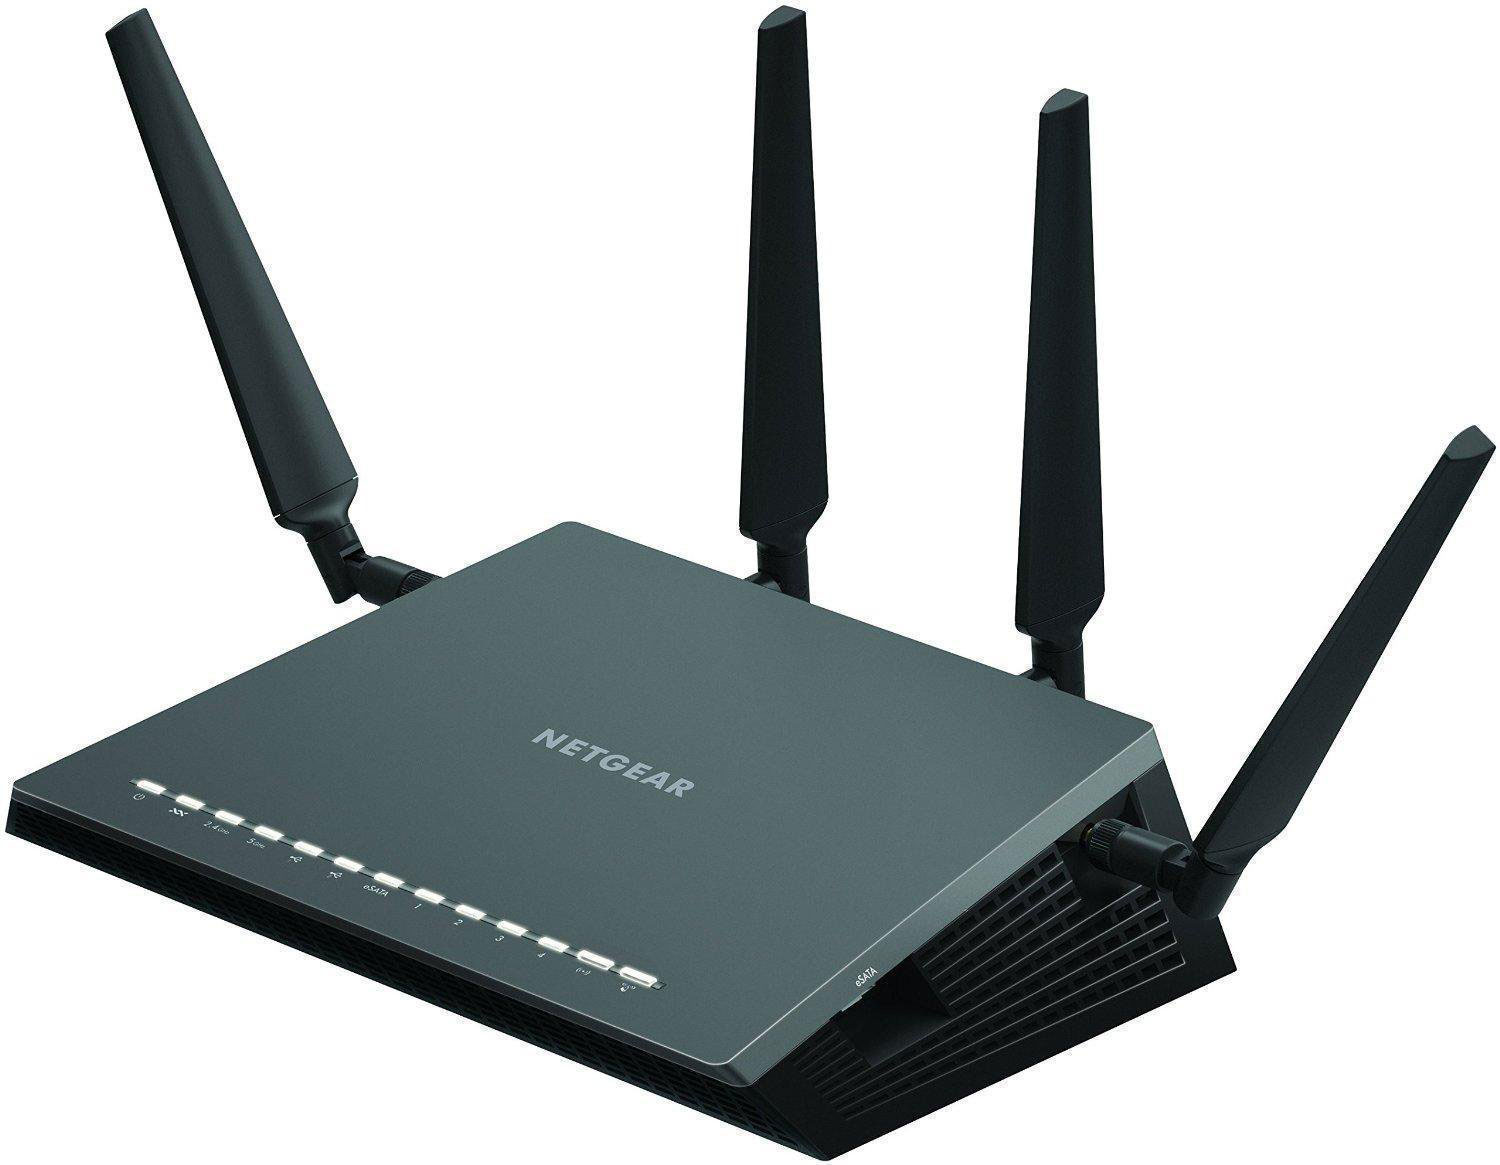 NETGEAR D7800 Nighthawk X4S AC2600 Simultaneous Dual-Band VDSL/ADSL2+ WiFi Router (2600Mbps AC)